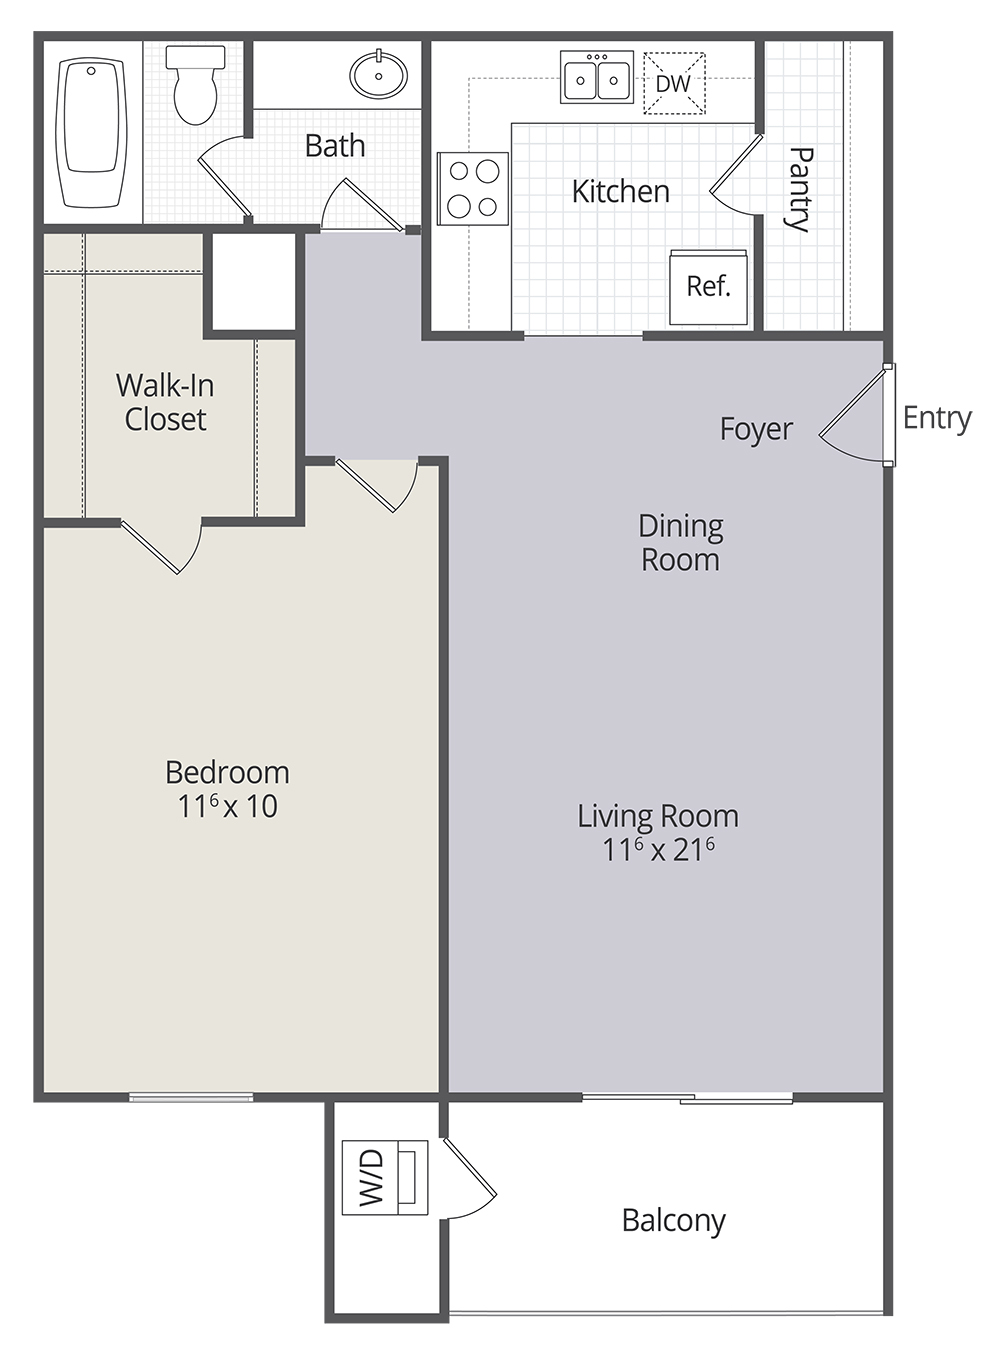 Bedroom Townhomes And Bedroom Apartments In - 1 bedroom apartments gainesville fl